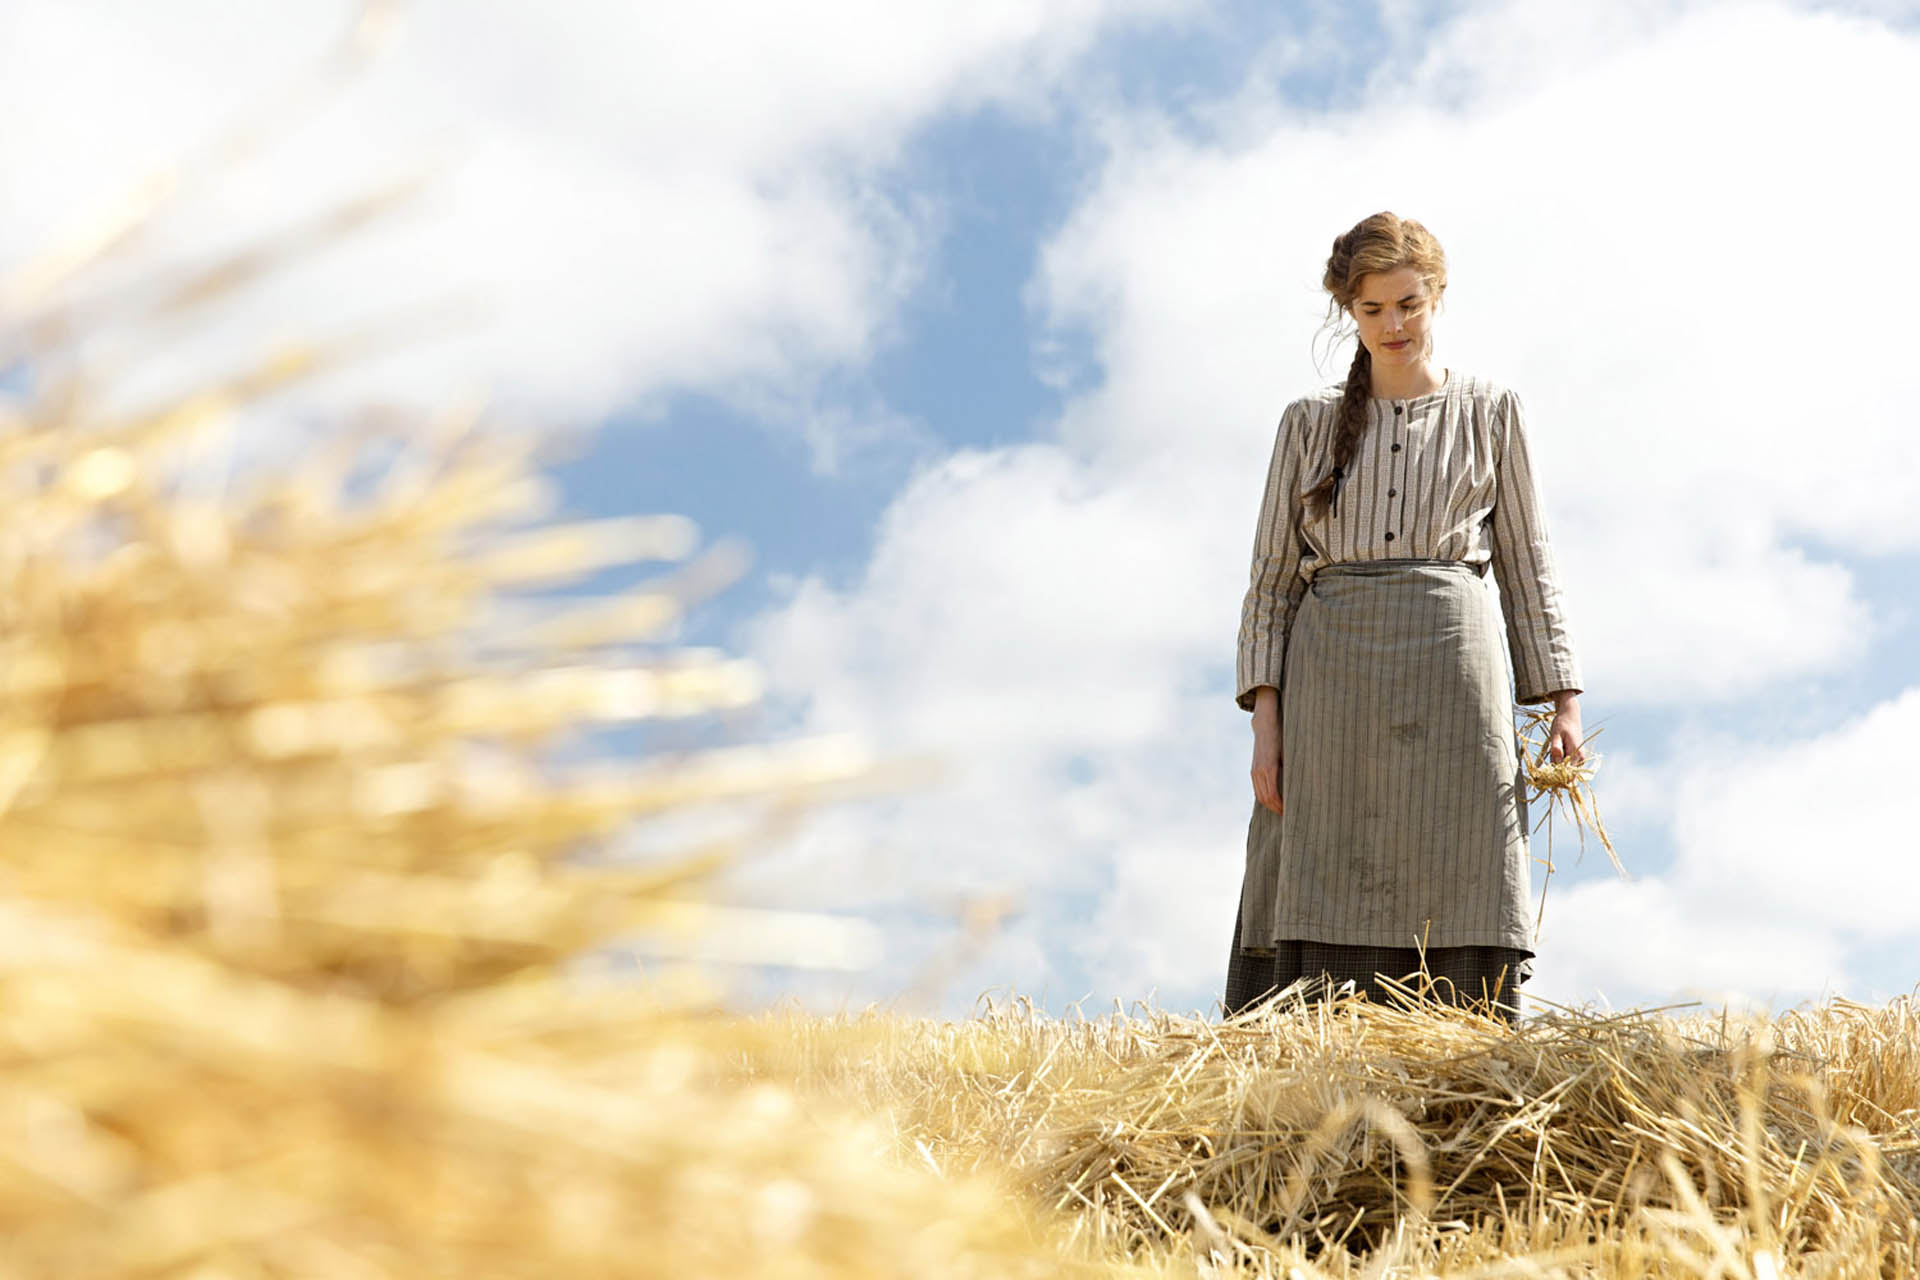 sunset song essay chris guthrie Sunset song, about a rural scottish girl growing to womanhood in the years before world war i, is one of the great director terence davies' best films: an example of old school and new school mentalities coming together to create a challenging and unique experience the movie feels as if it could.